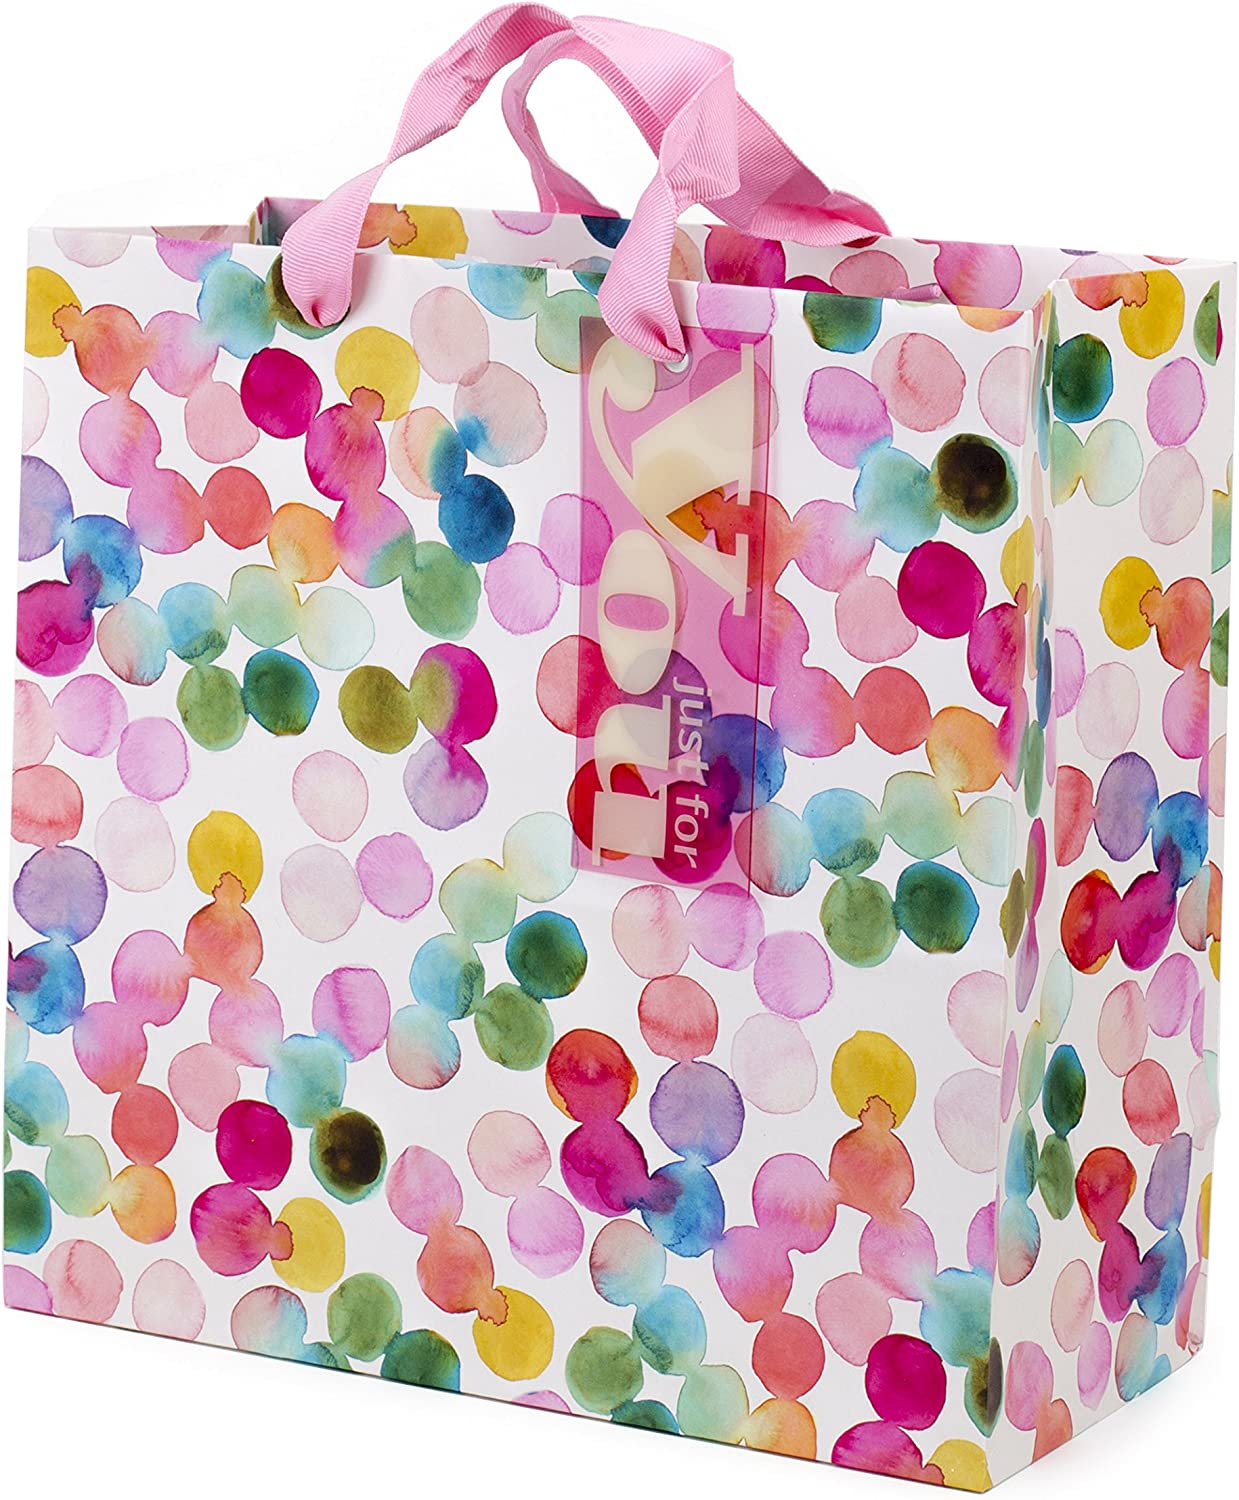 "Hallmark 10"" Large Square Gift Bag (Watercolor Dots, Just for You) for Birthdays, Mothers Day, Easter, Graduations, Retirements and More"